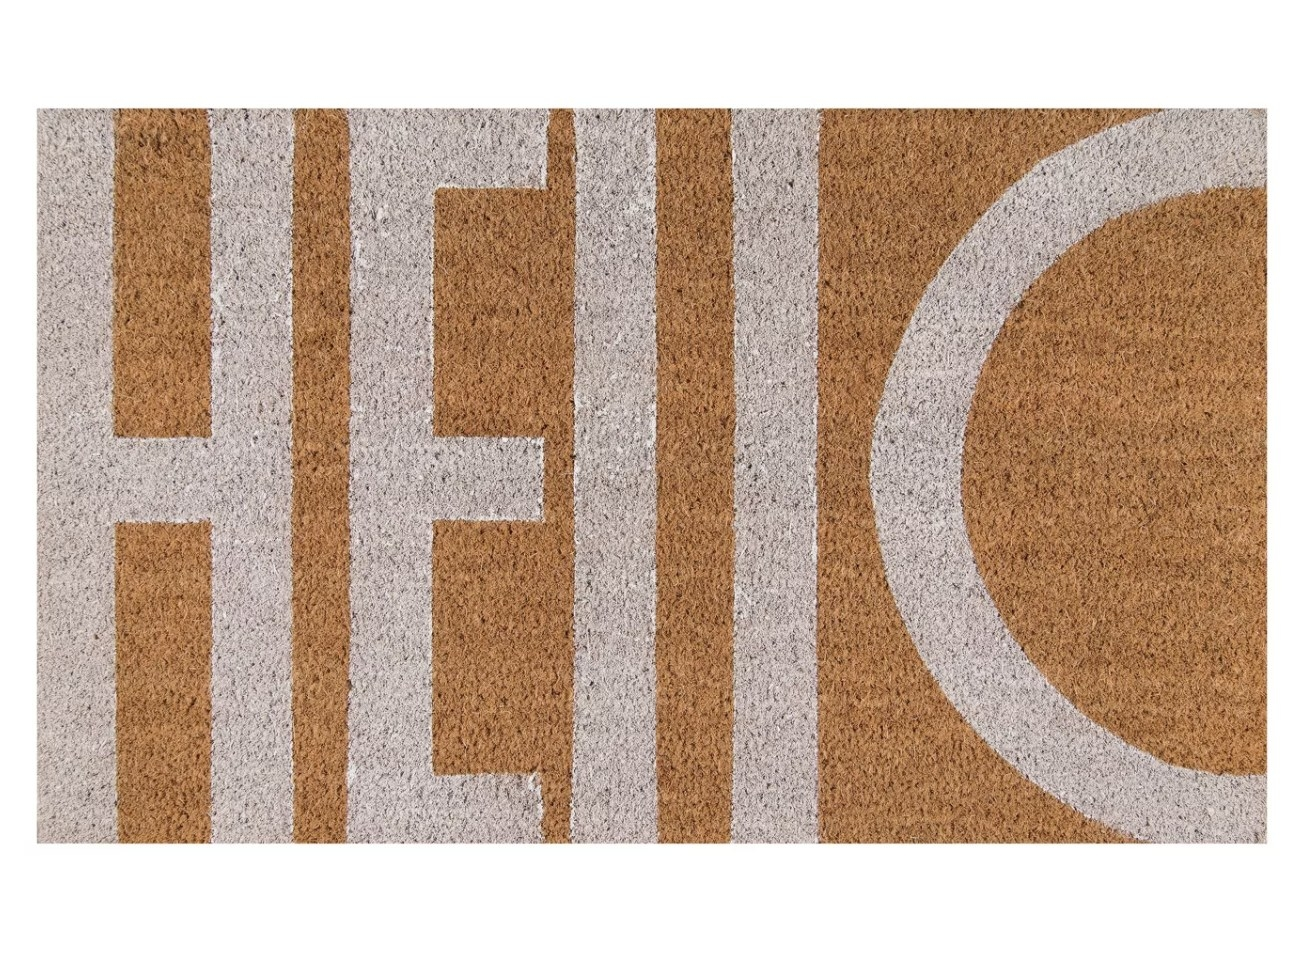 A mat that says Hello on it